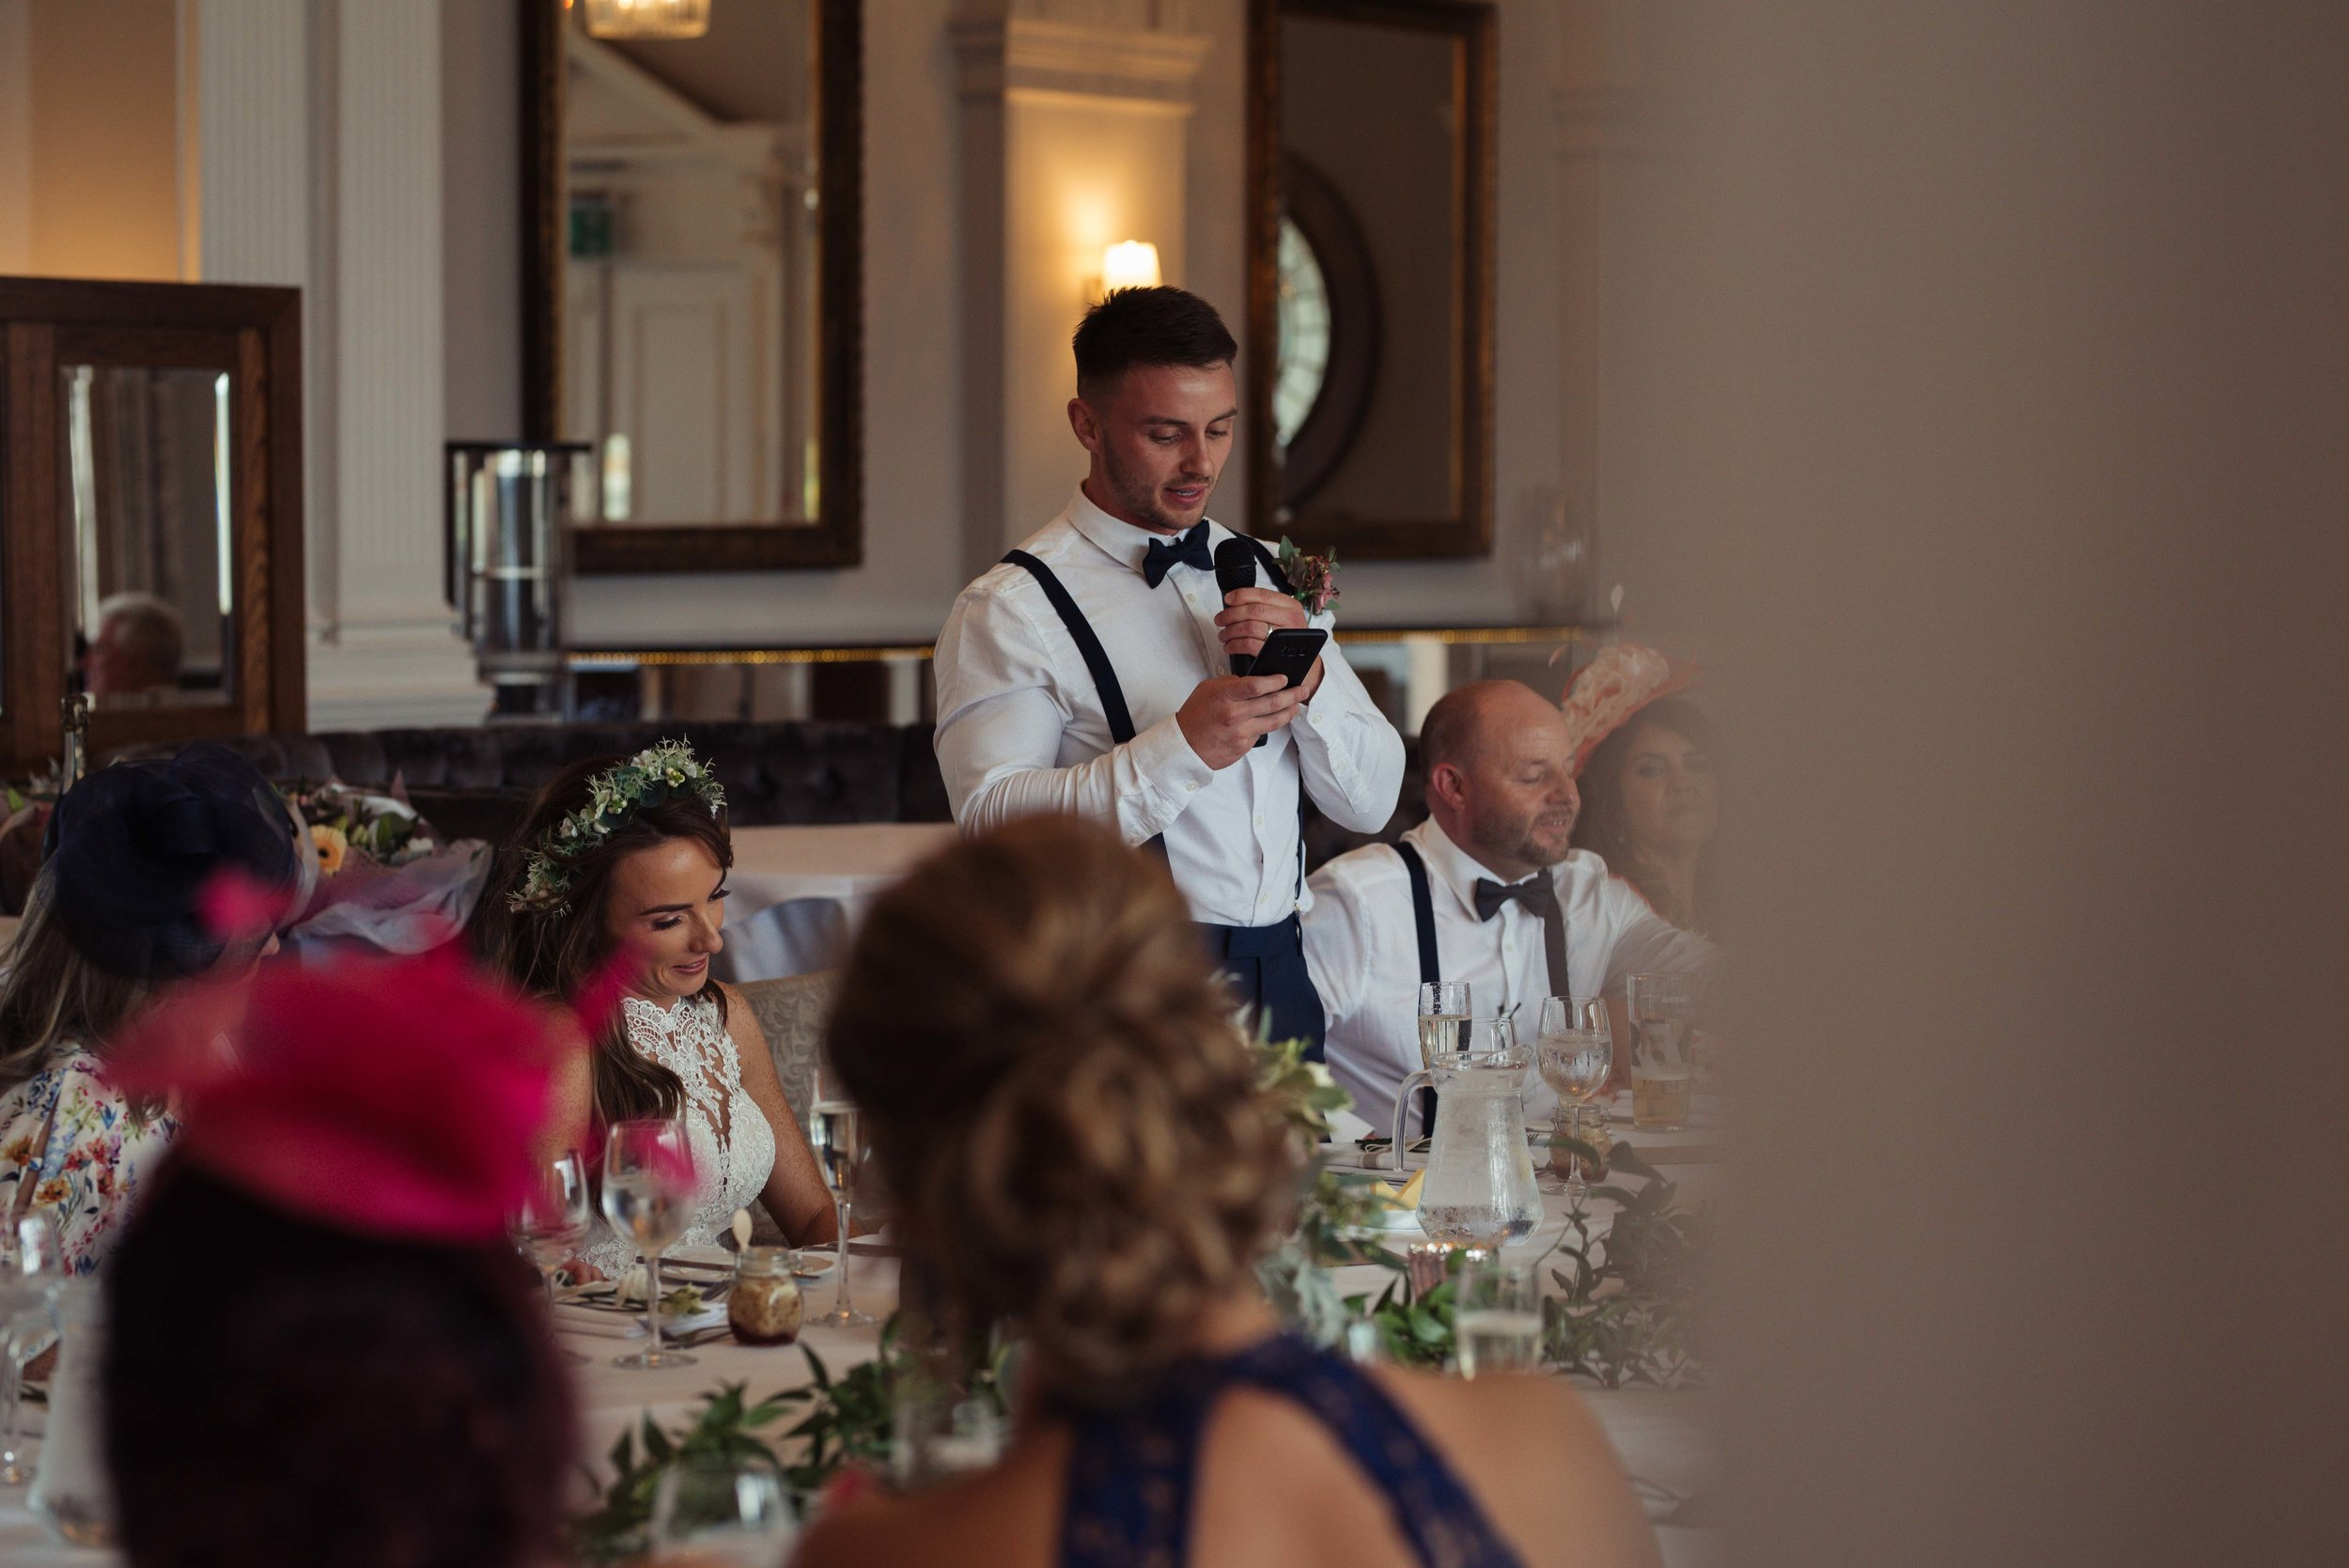 The groom becomes emotional during the speeches